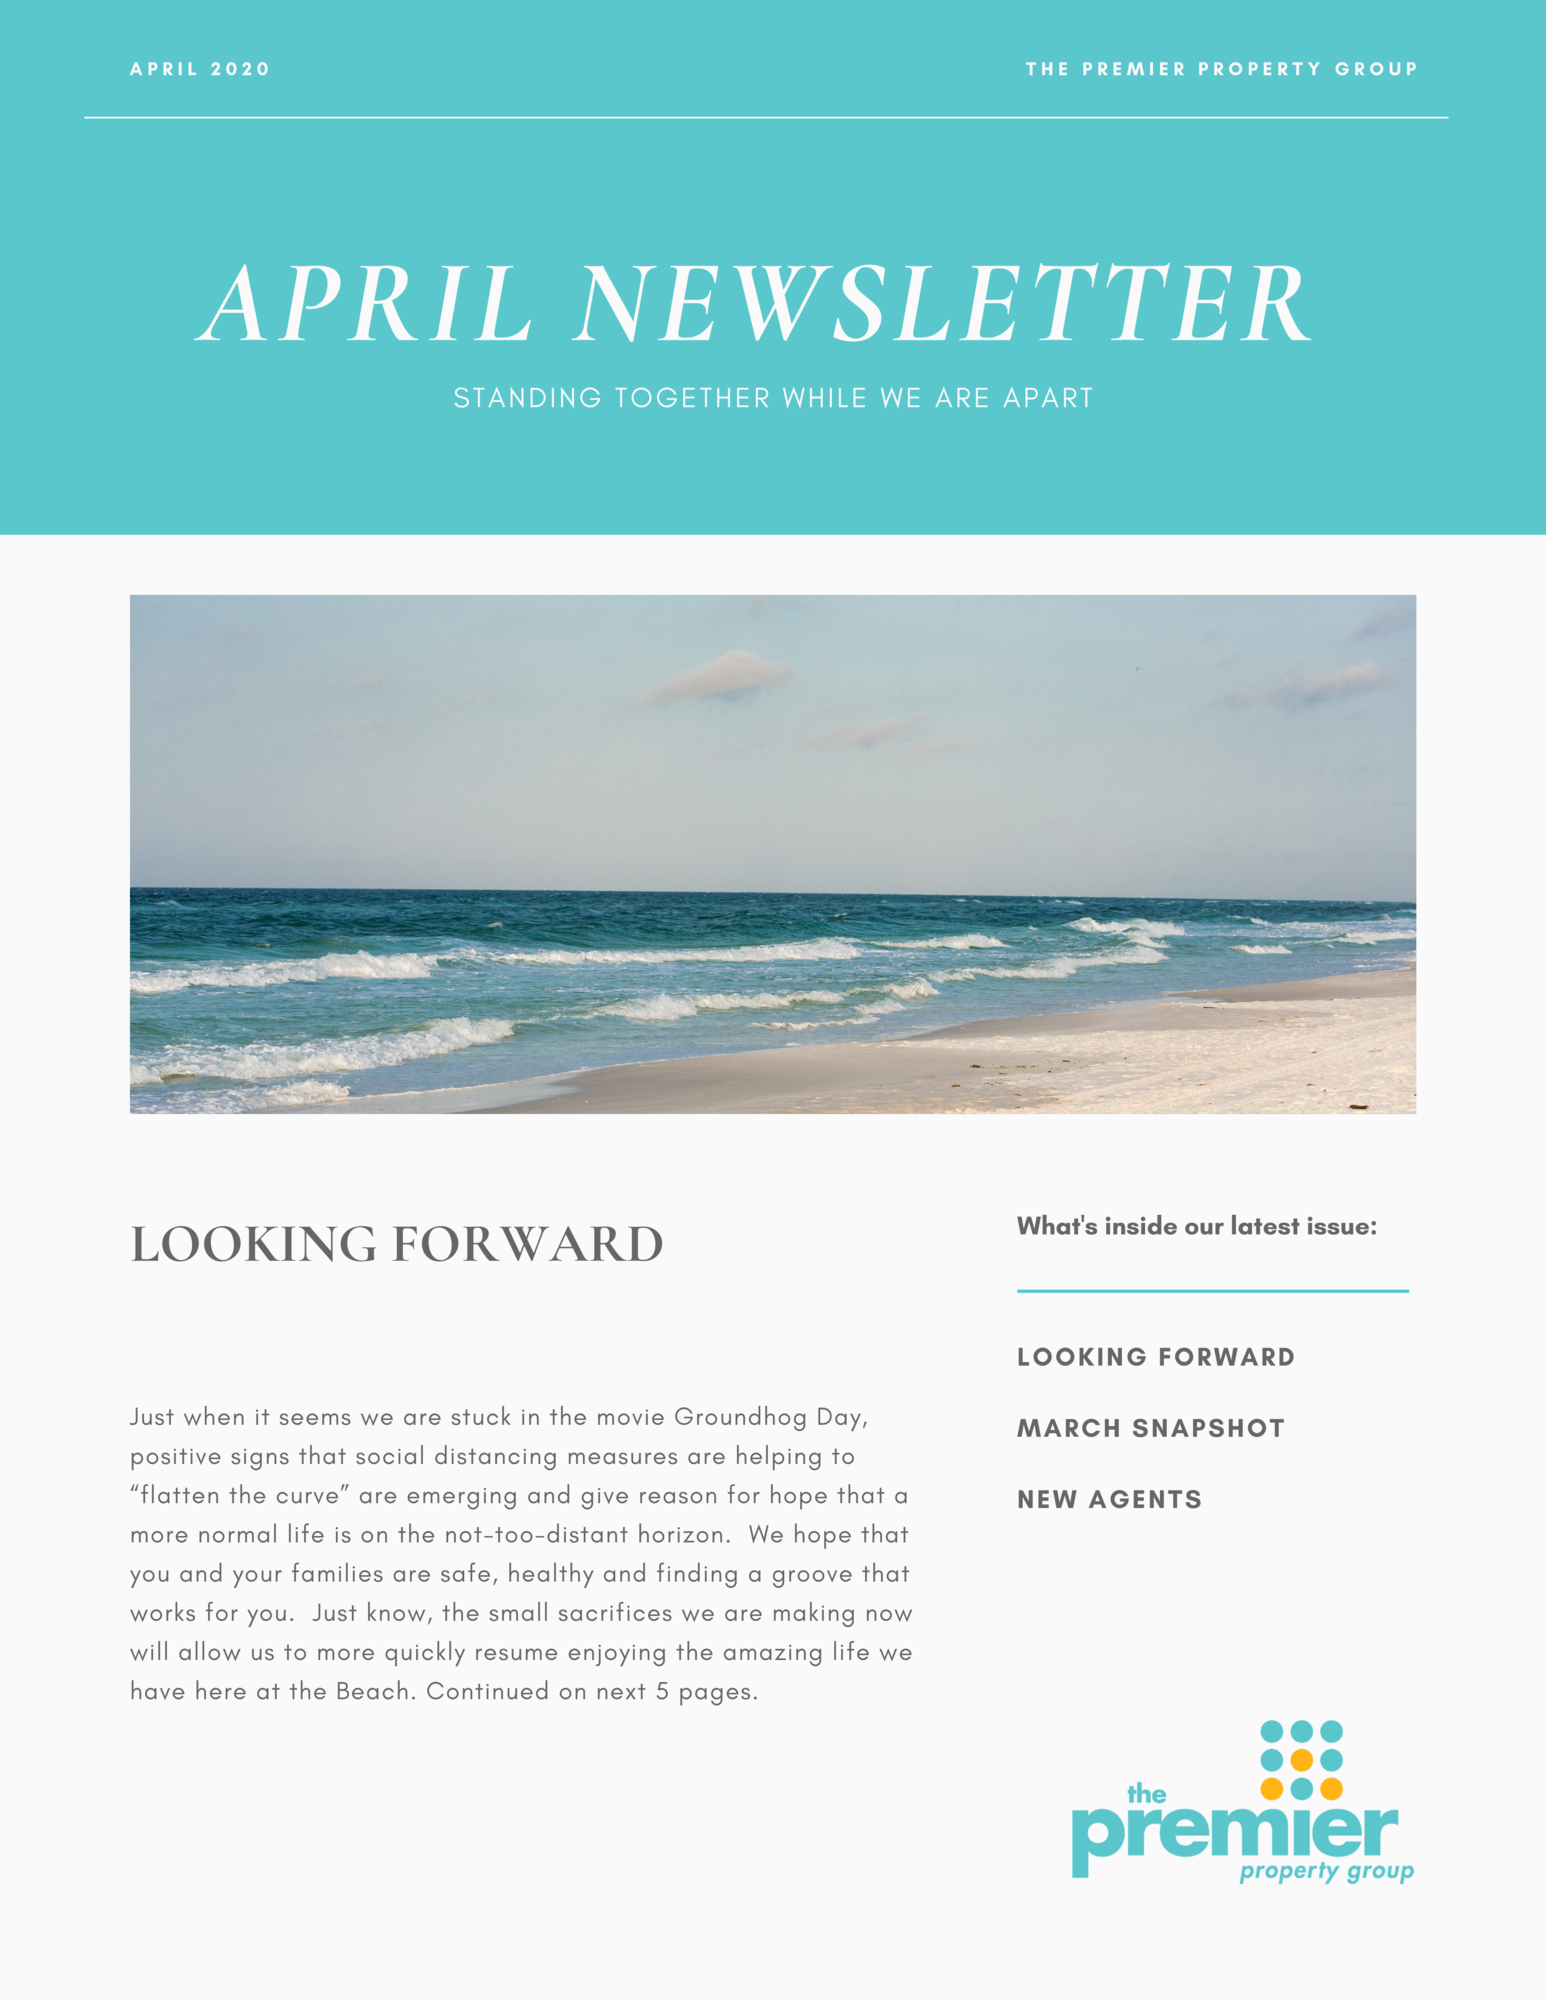 April 2020 Newsletter Page 1